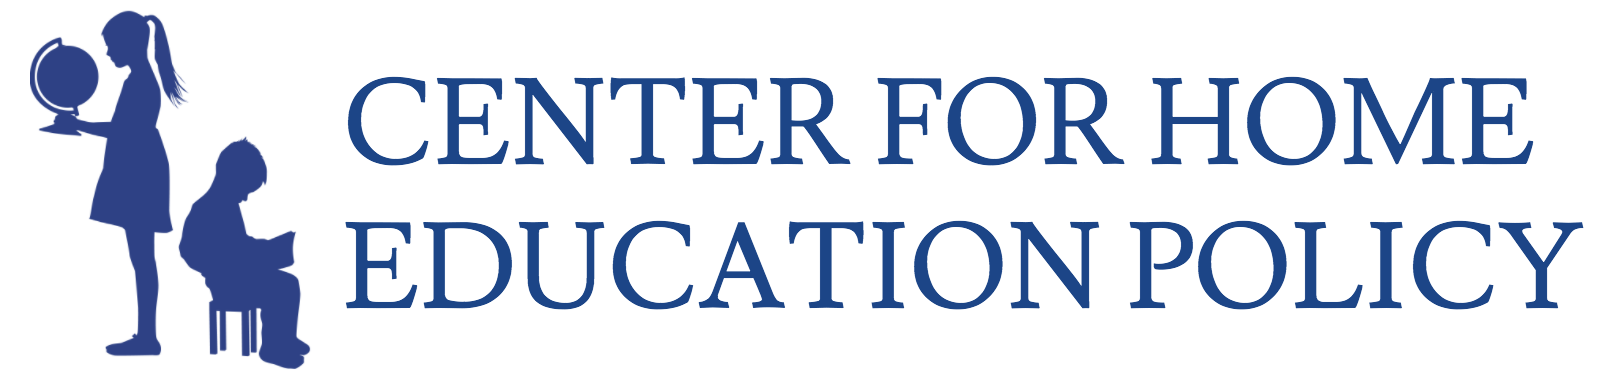 Center for Home Education Policy